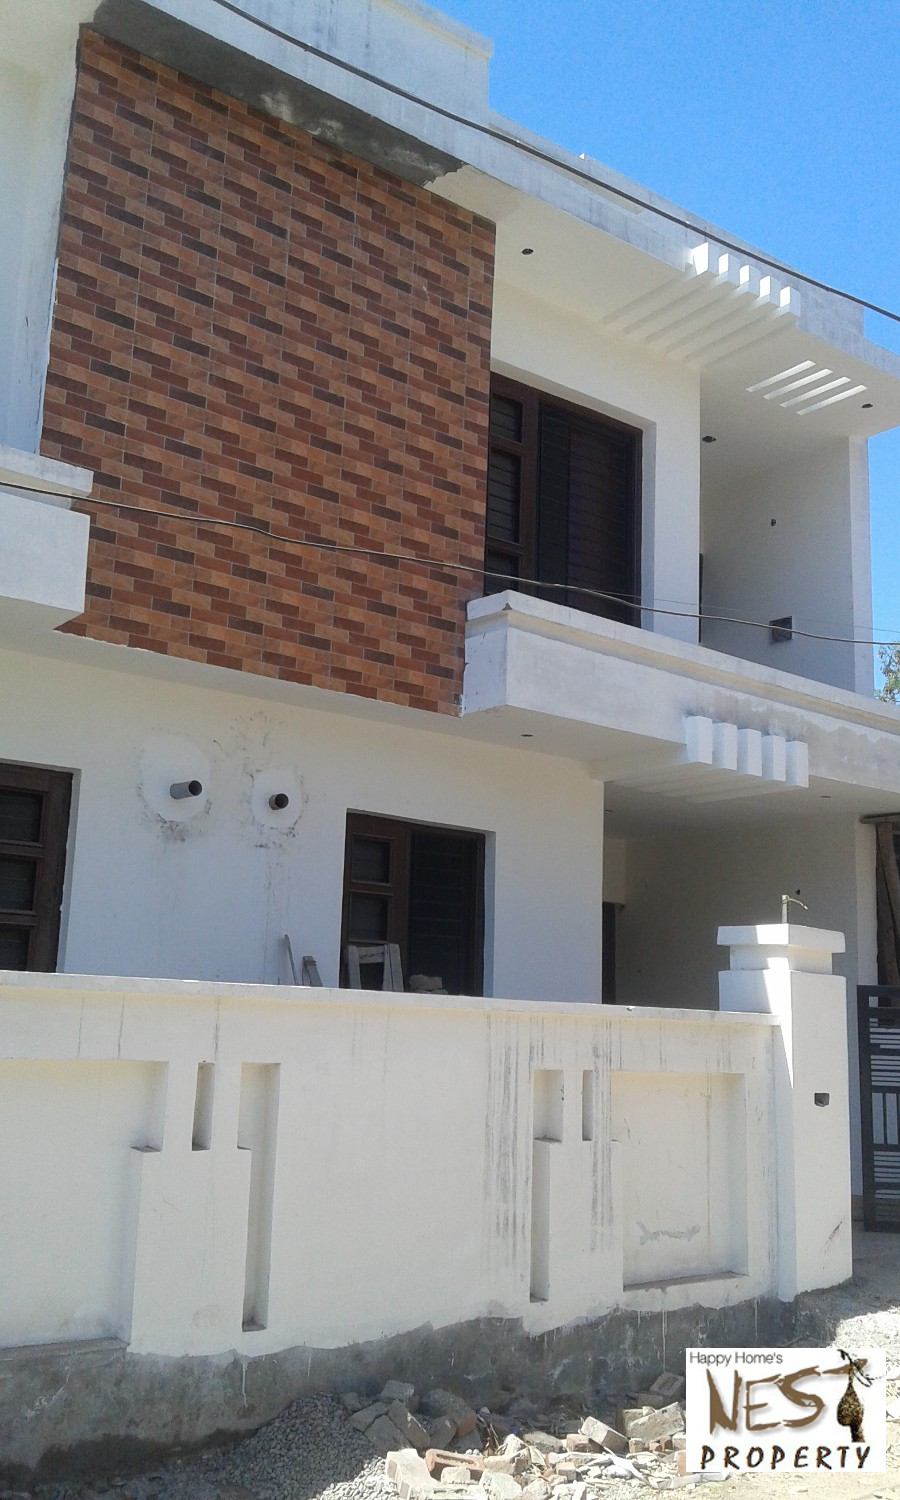 100 Sq Yards Independent Duplex @ 55 lac in Panchasheel Enclave Chandigarh-Ambala Road Zirakpur Call-9888775612 ,9888777712